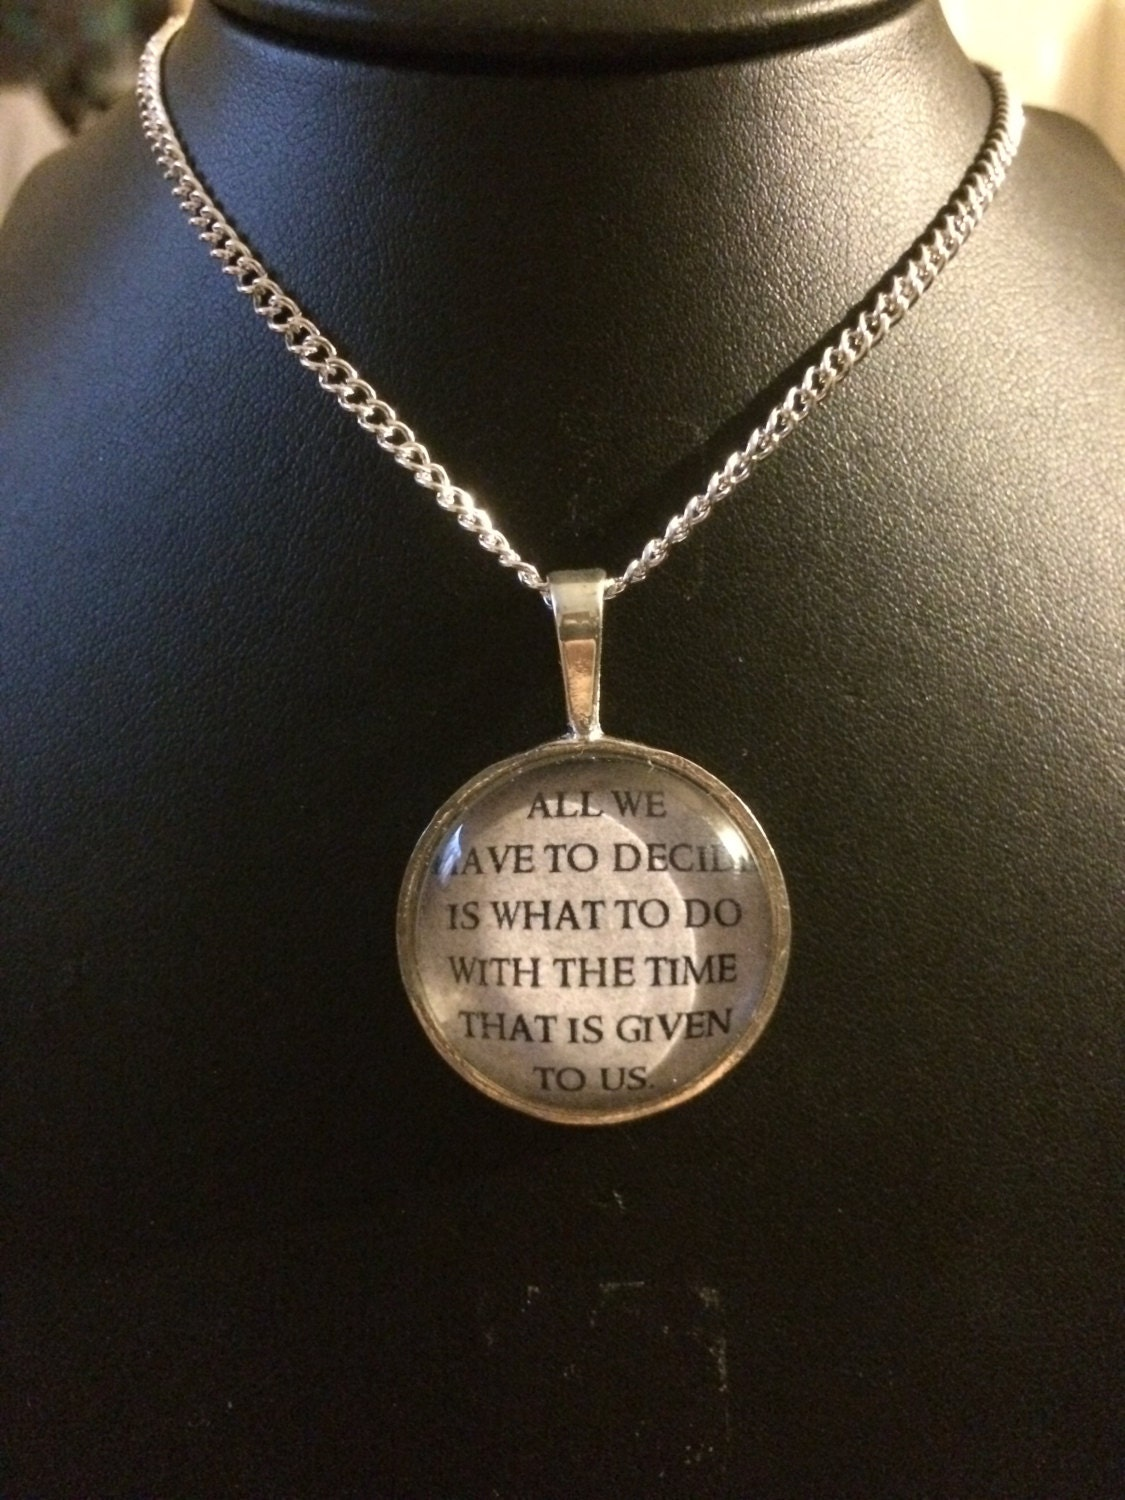 lord of the rings necklace by charleerambocrafts on etsy